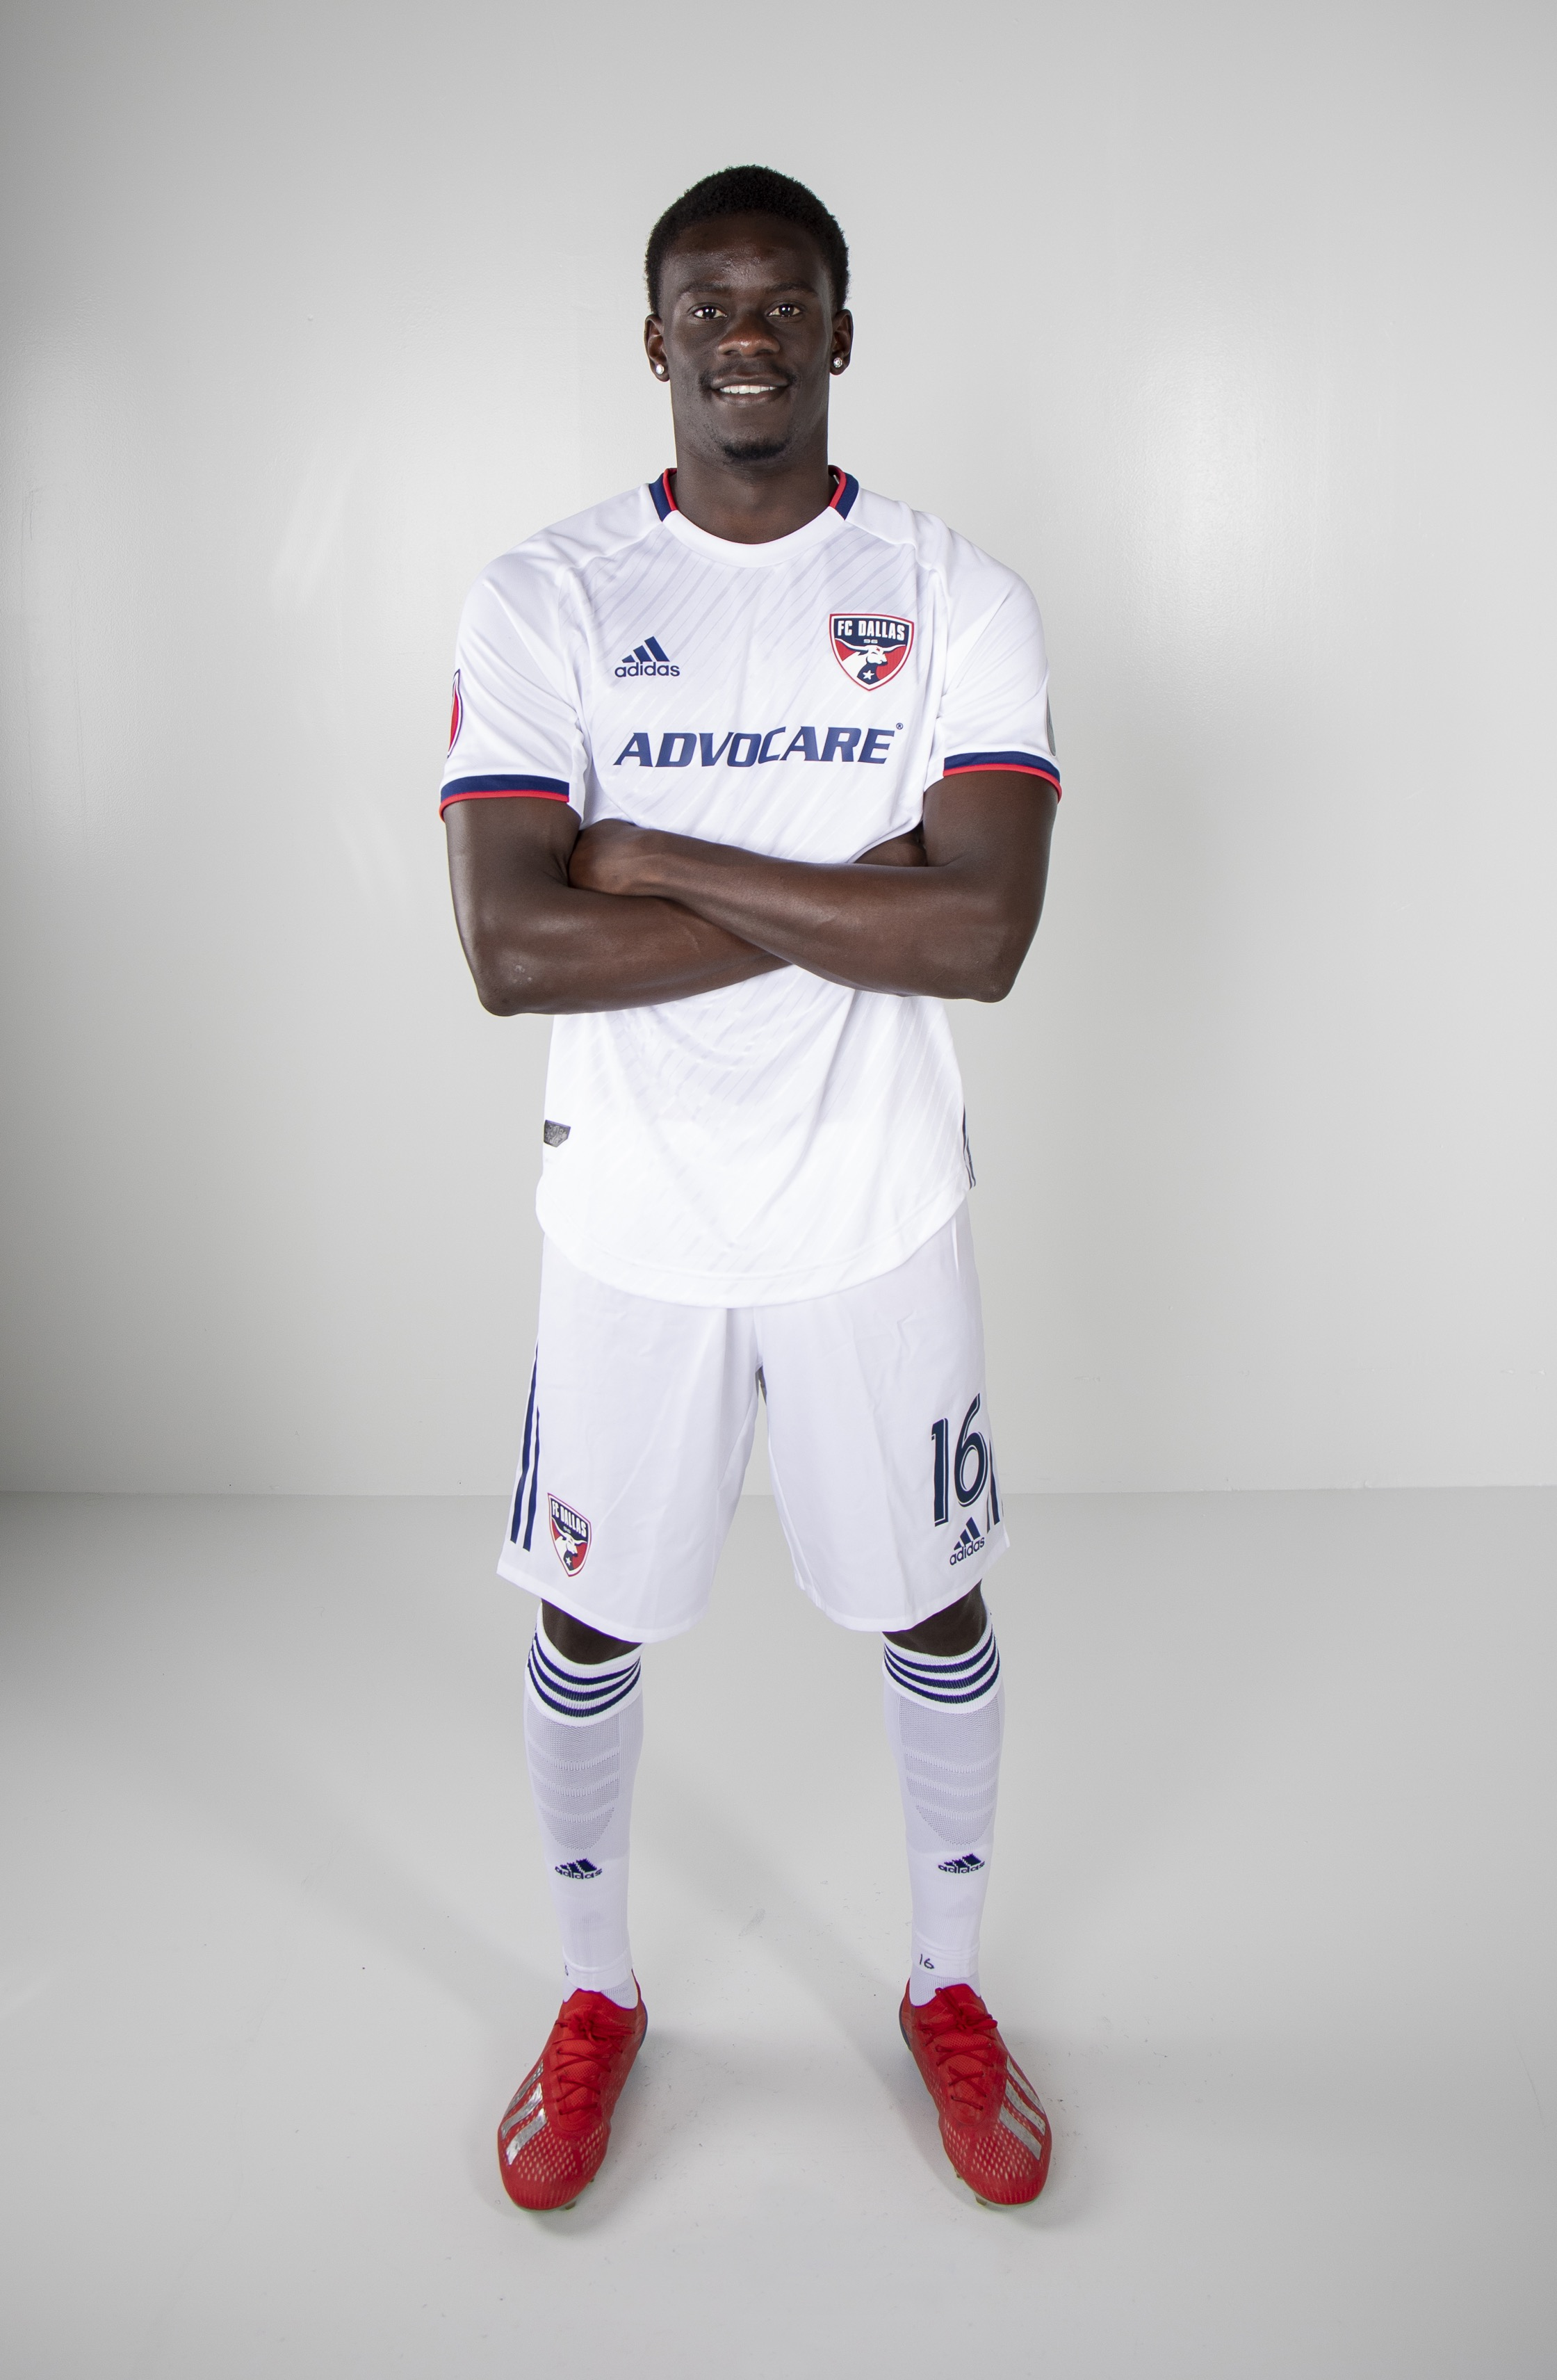 fc dallas away jersey Off 56% - www.bashhguidelines.org